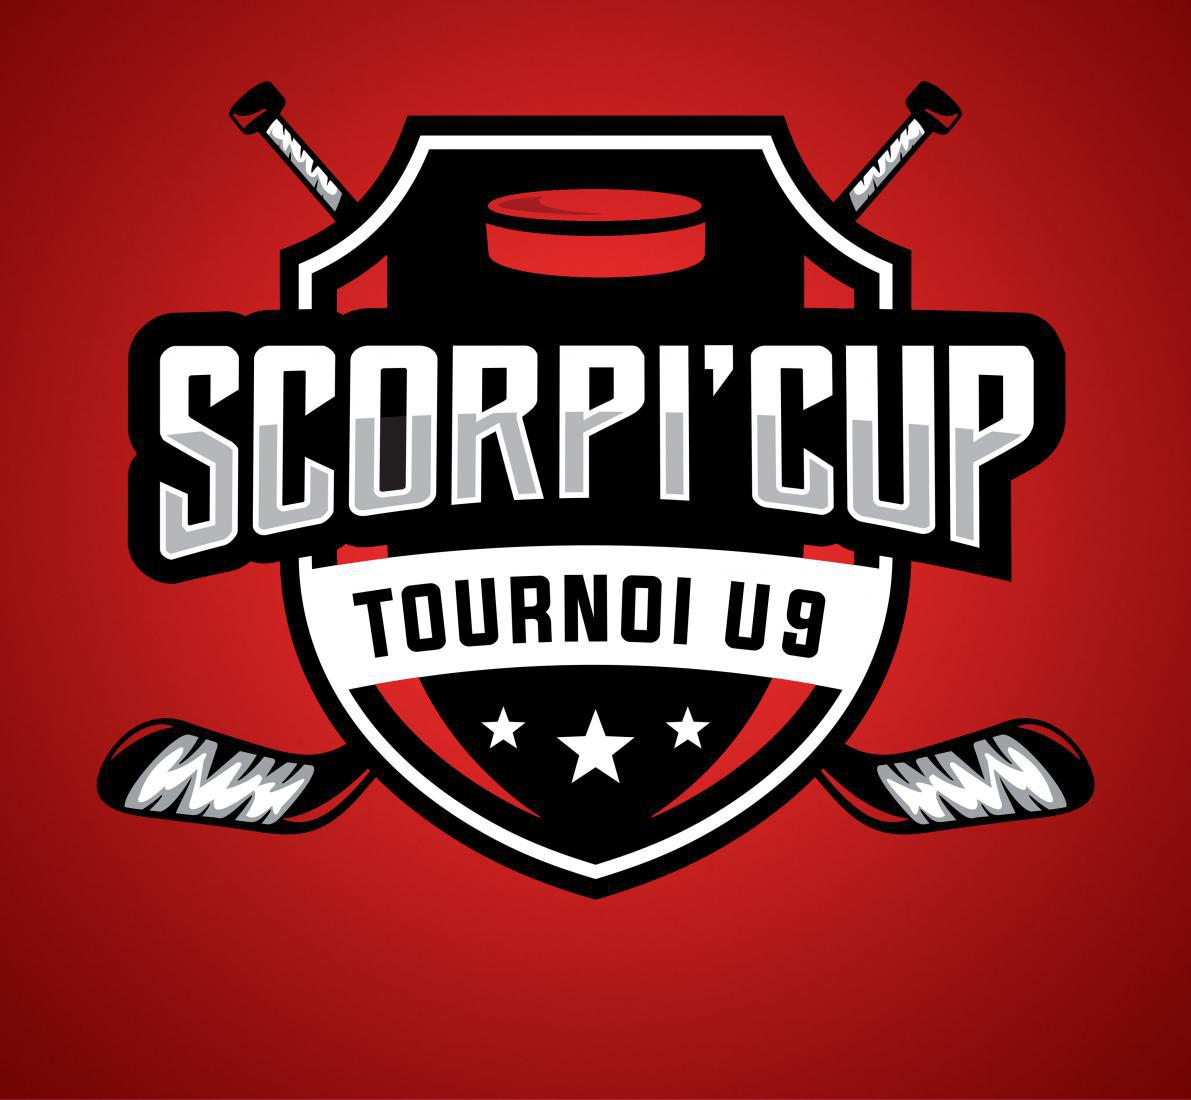 Scorpi'Cup 13 et 14 Avril 2019